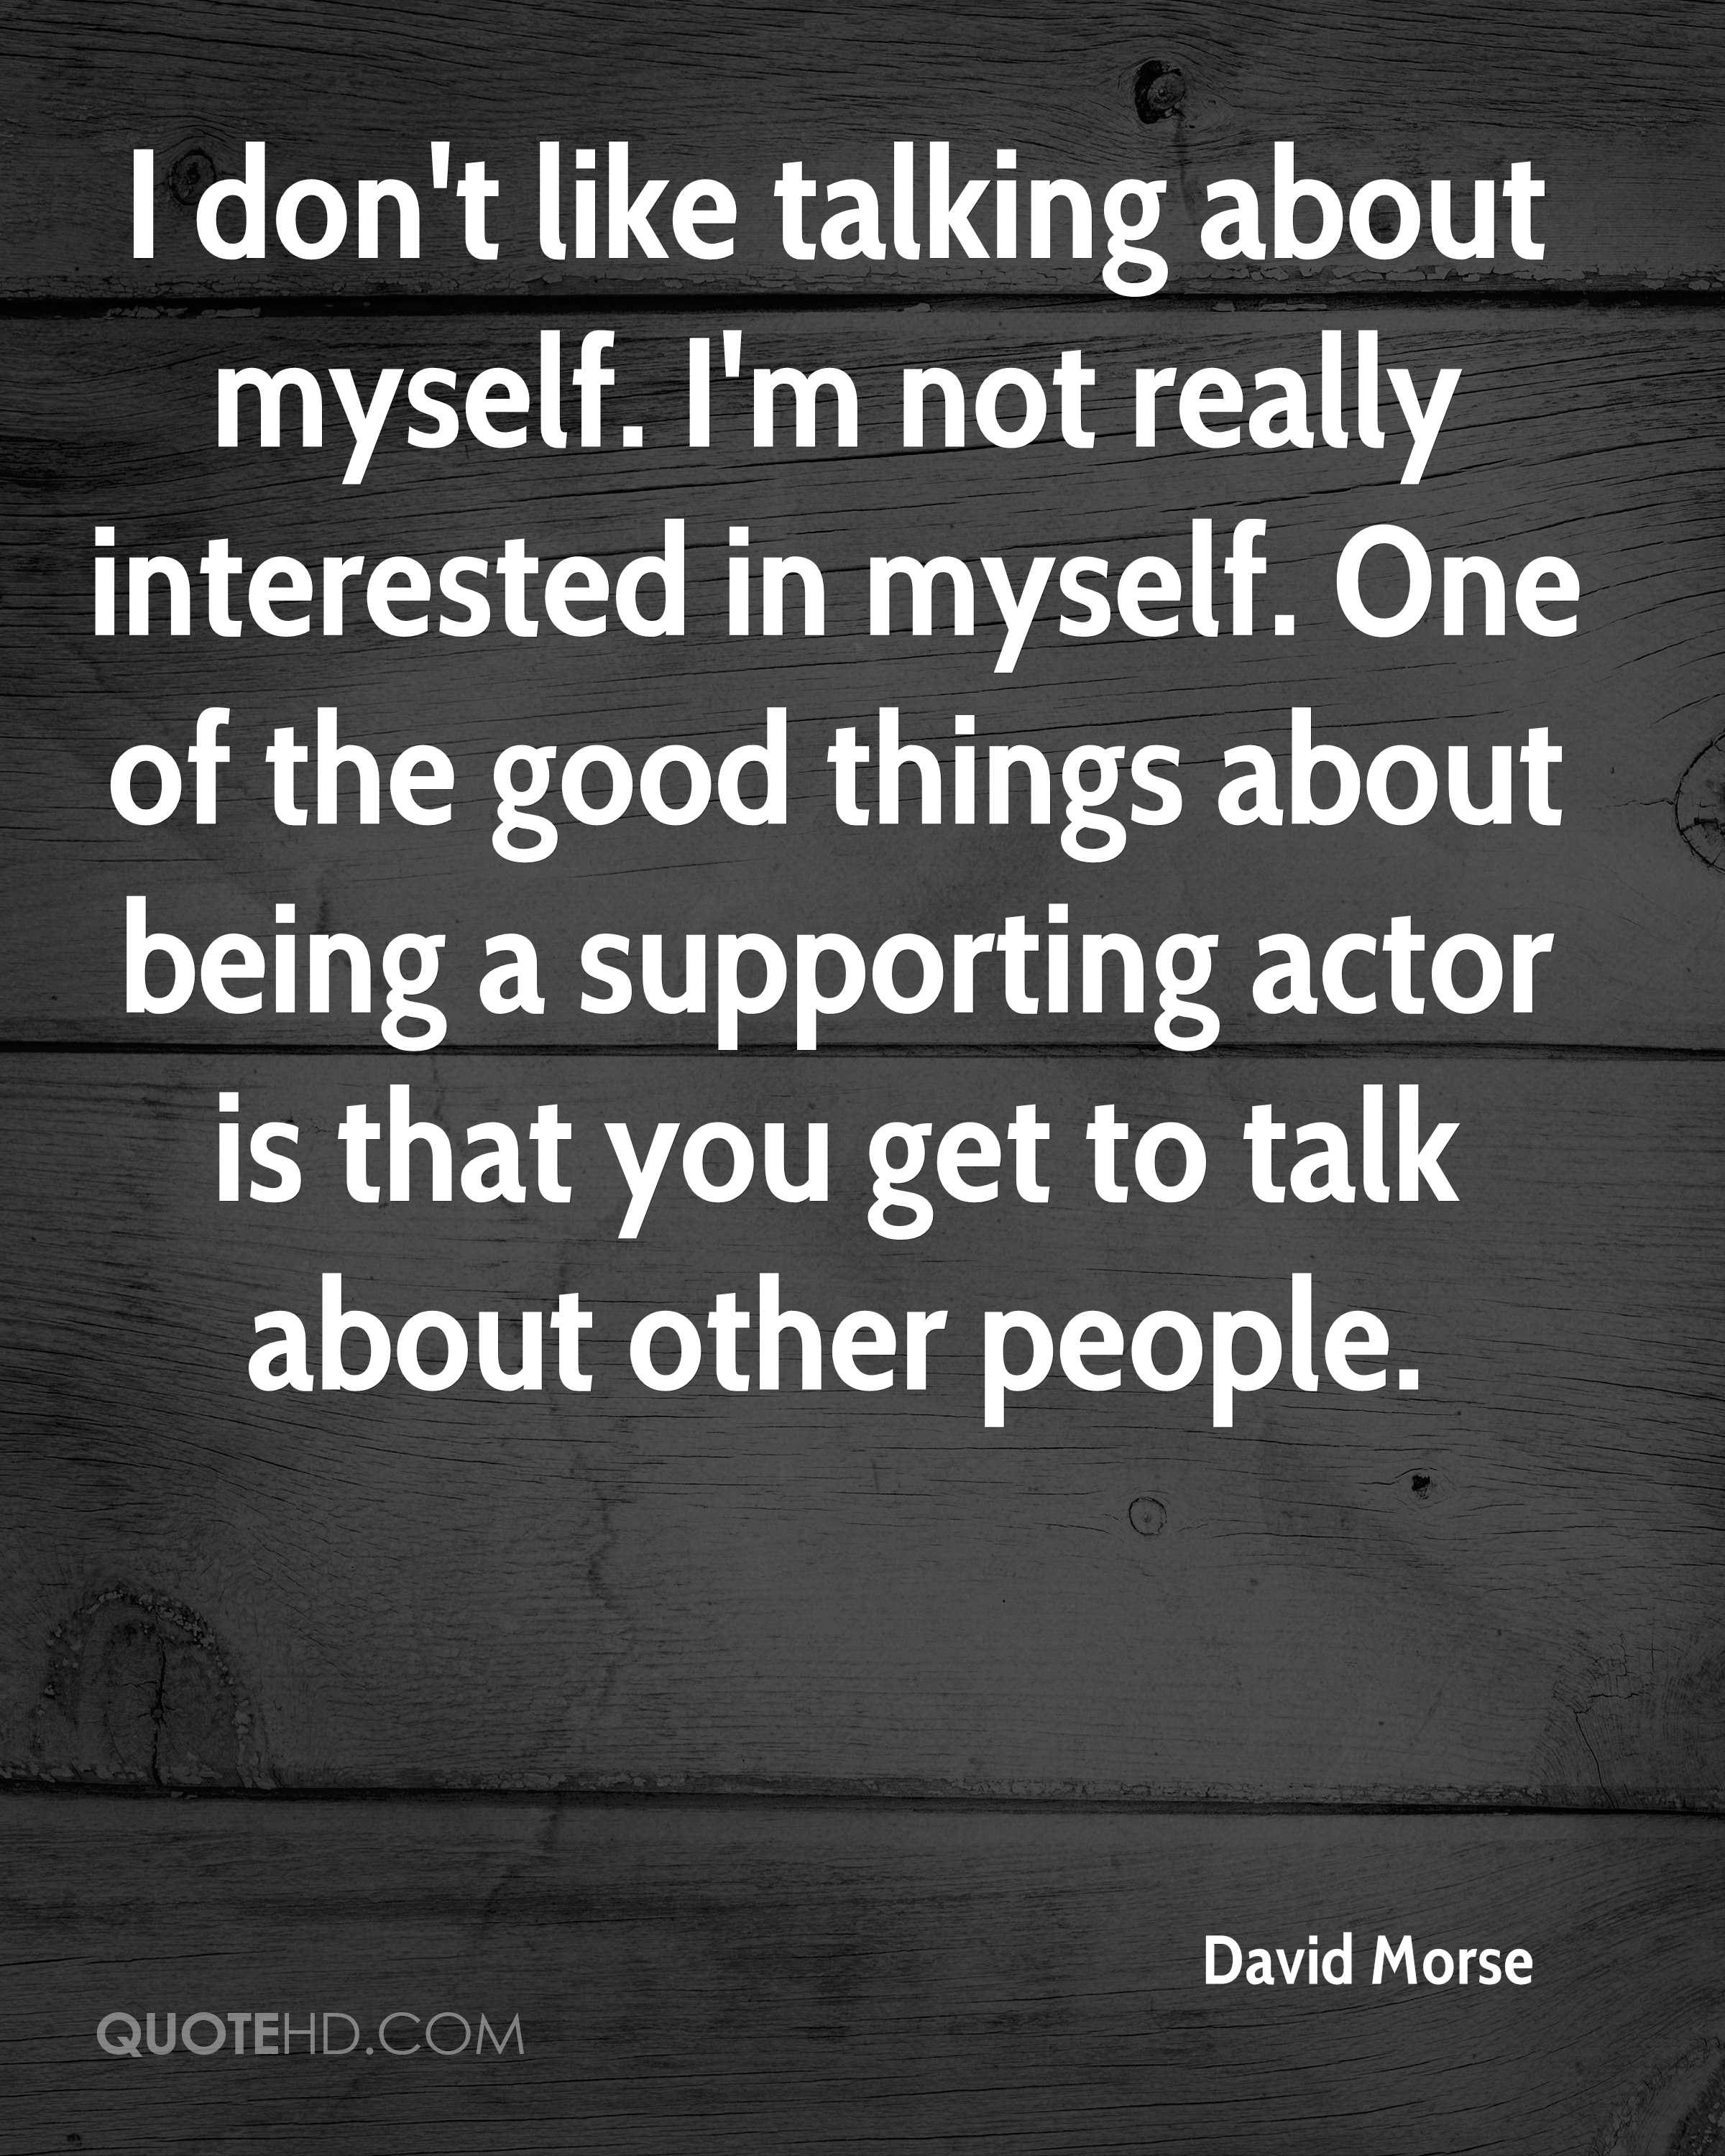 I don't like talking about myself. I'm not really interested in myself. One of the good things about being a supporting actor is that you get to talk about other people.